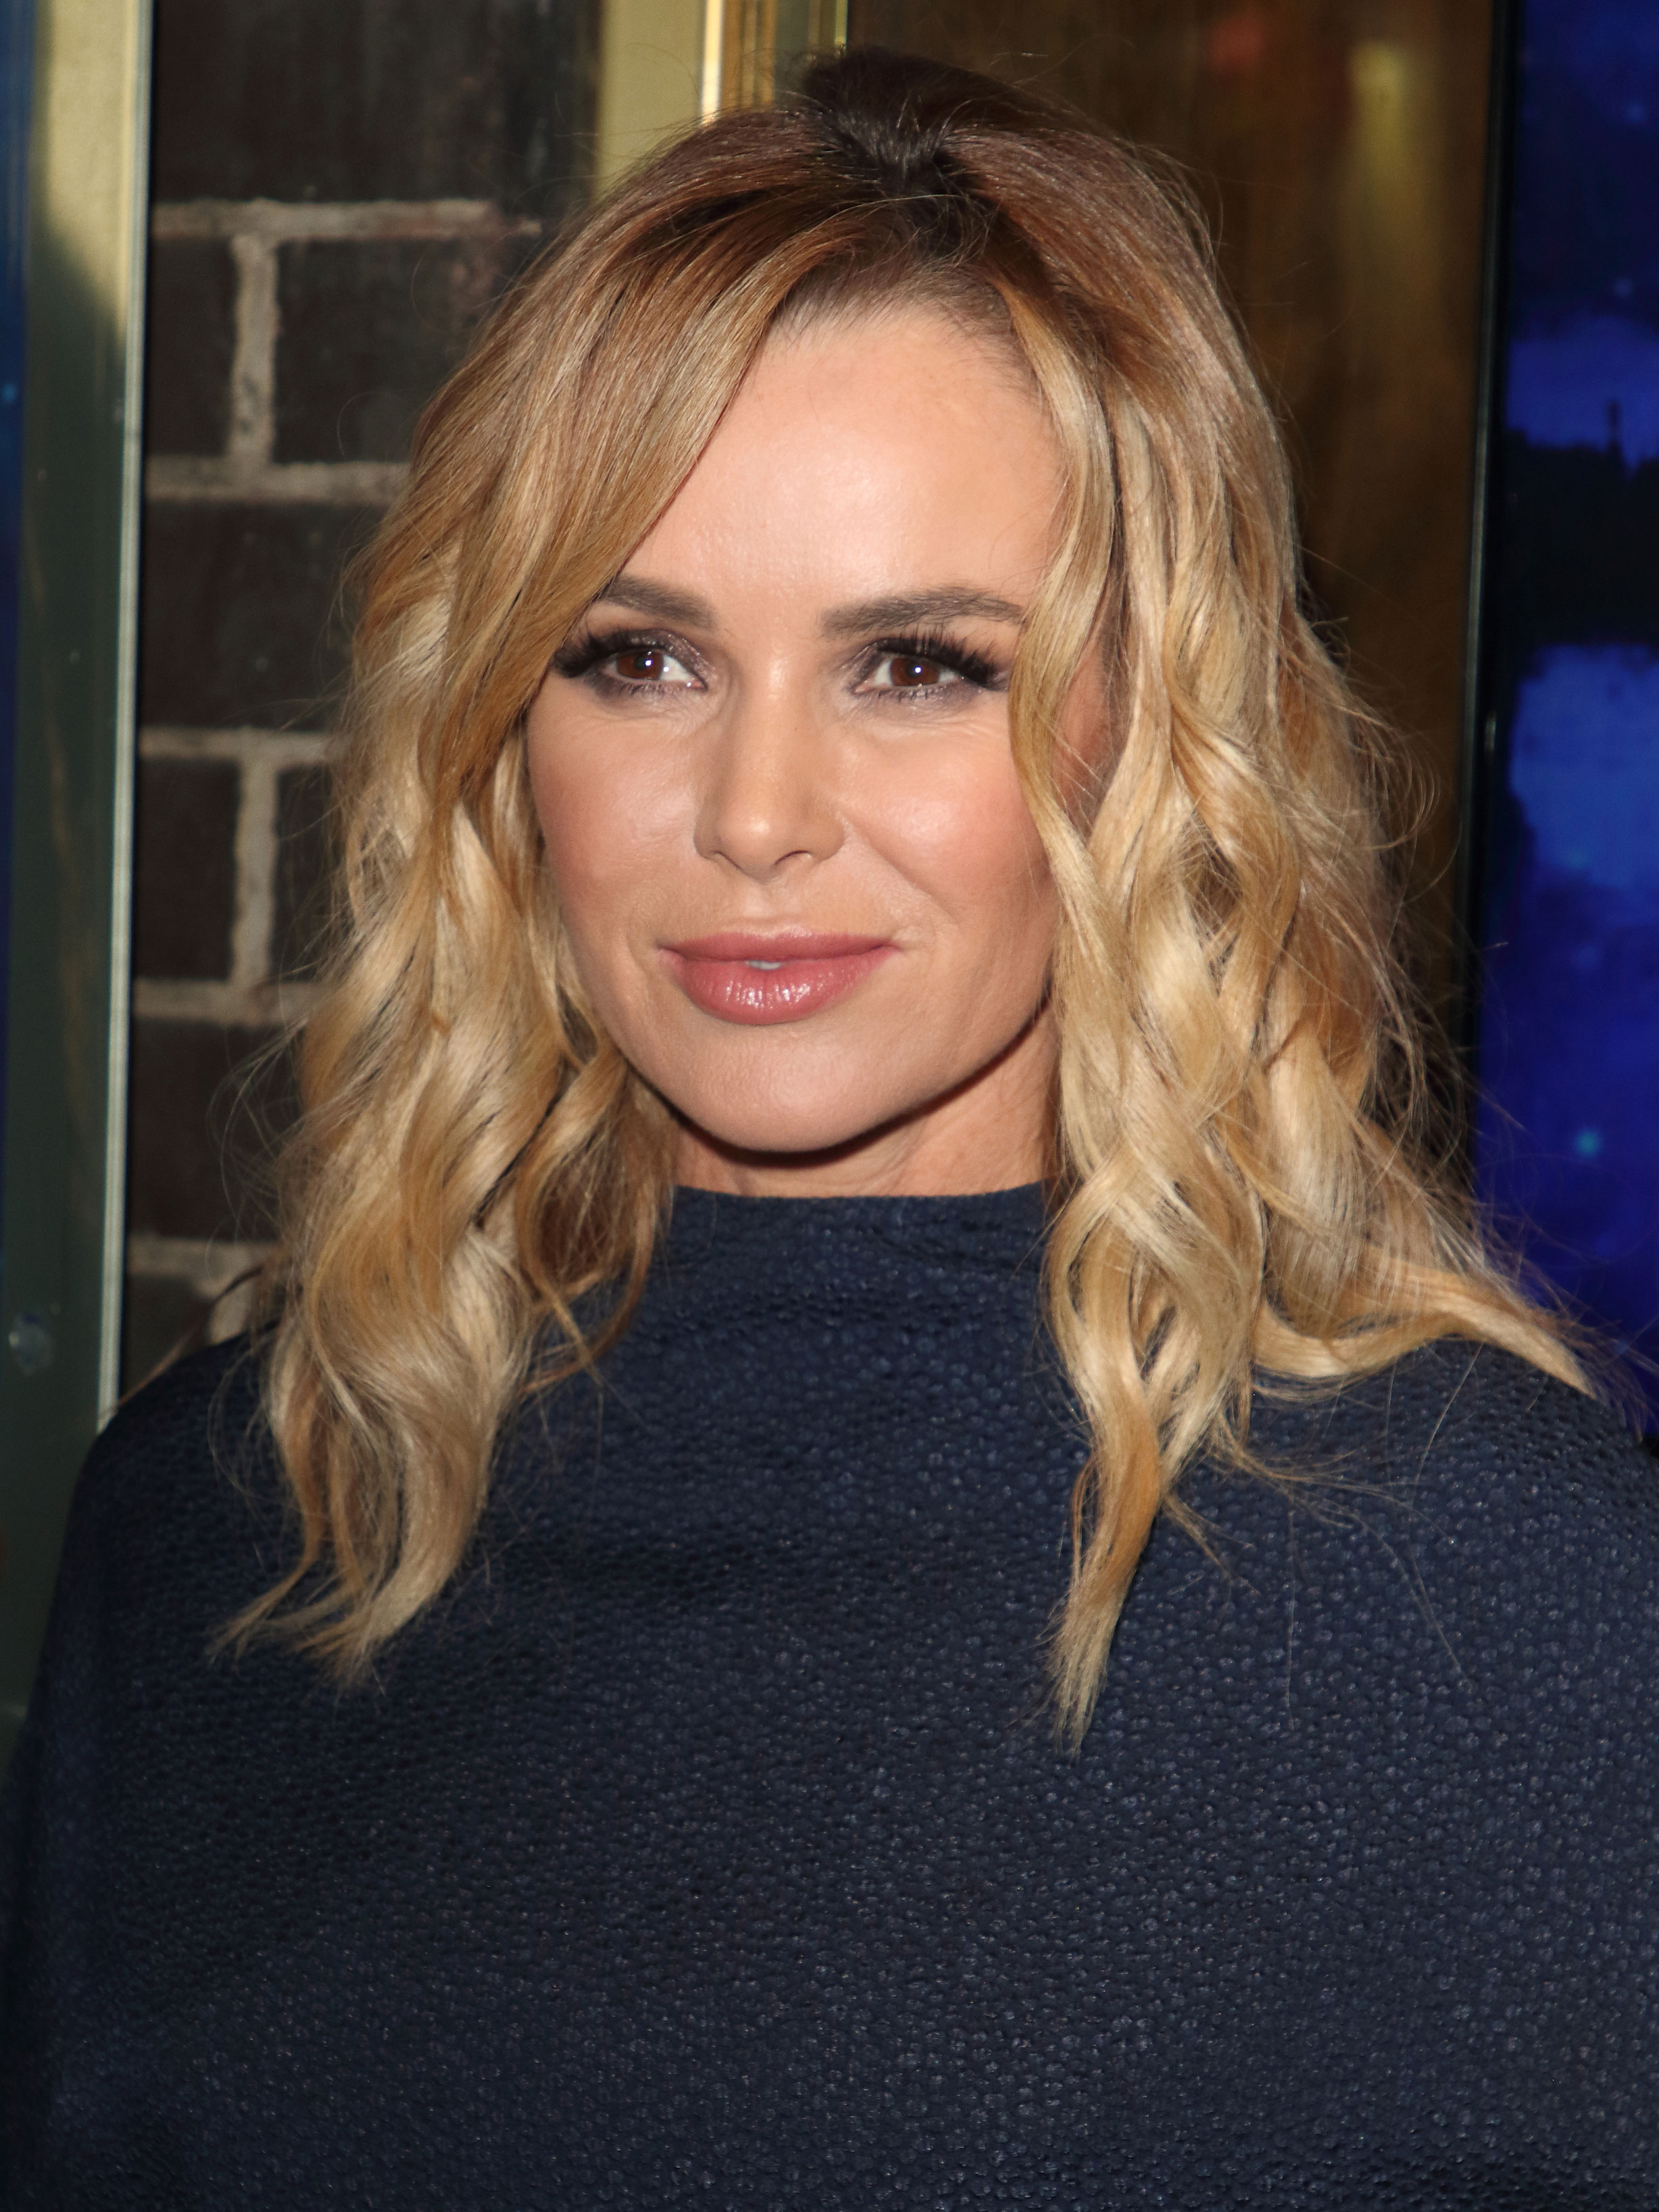 Amanda Holden shows off legs in knee high leather boots in the best way